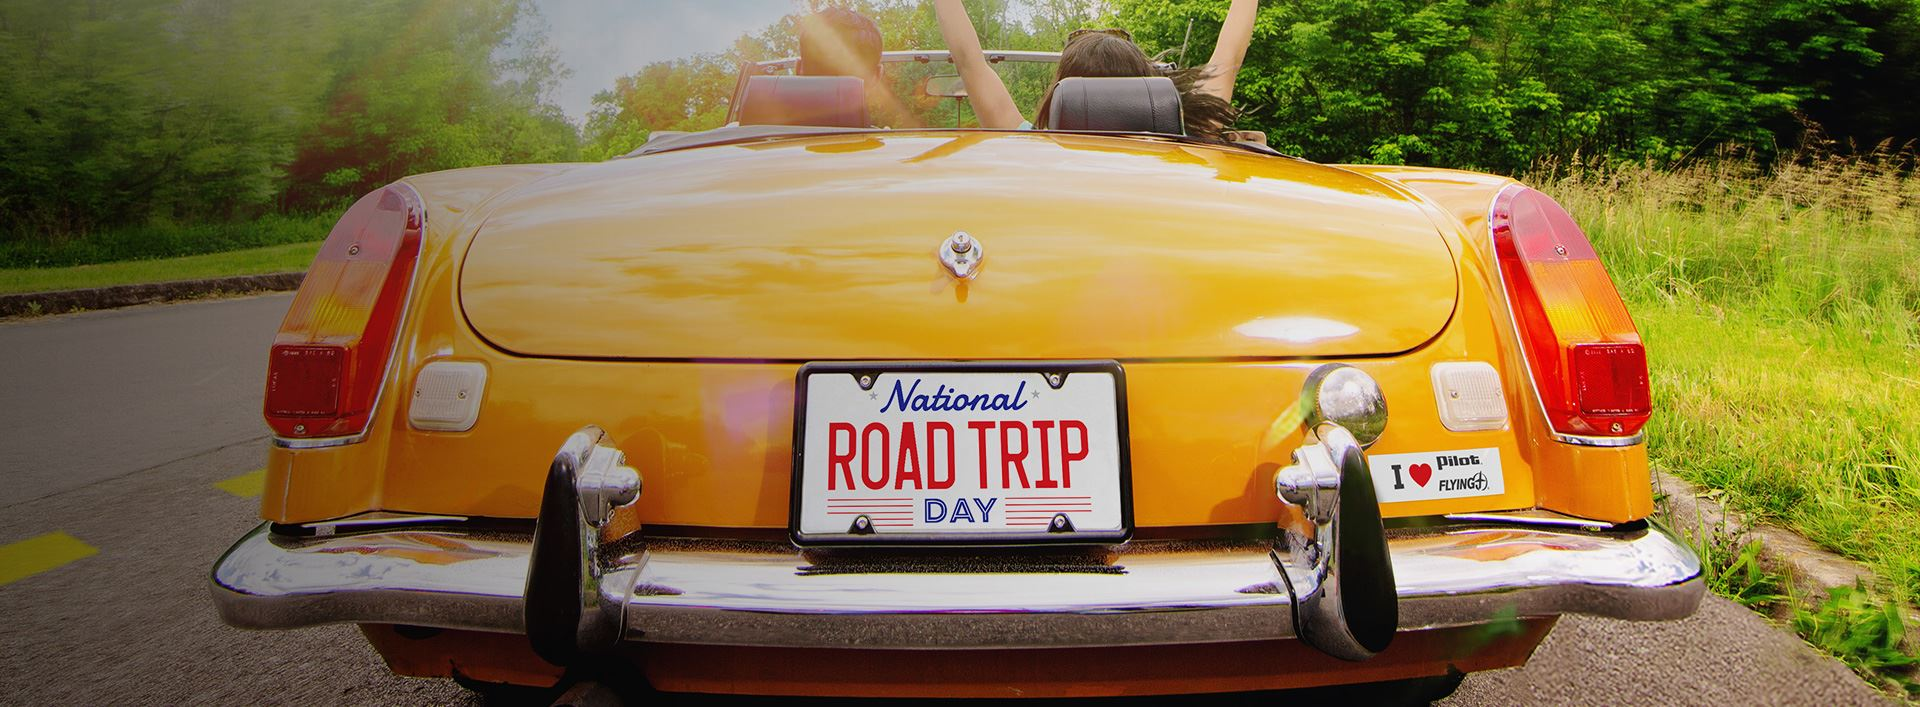 road_trip_day_2019_1920x707